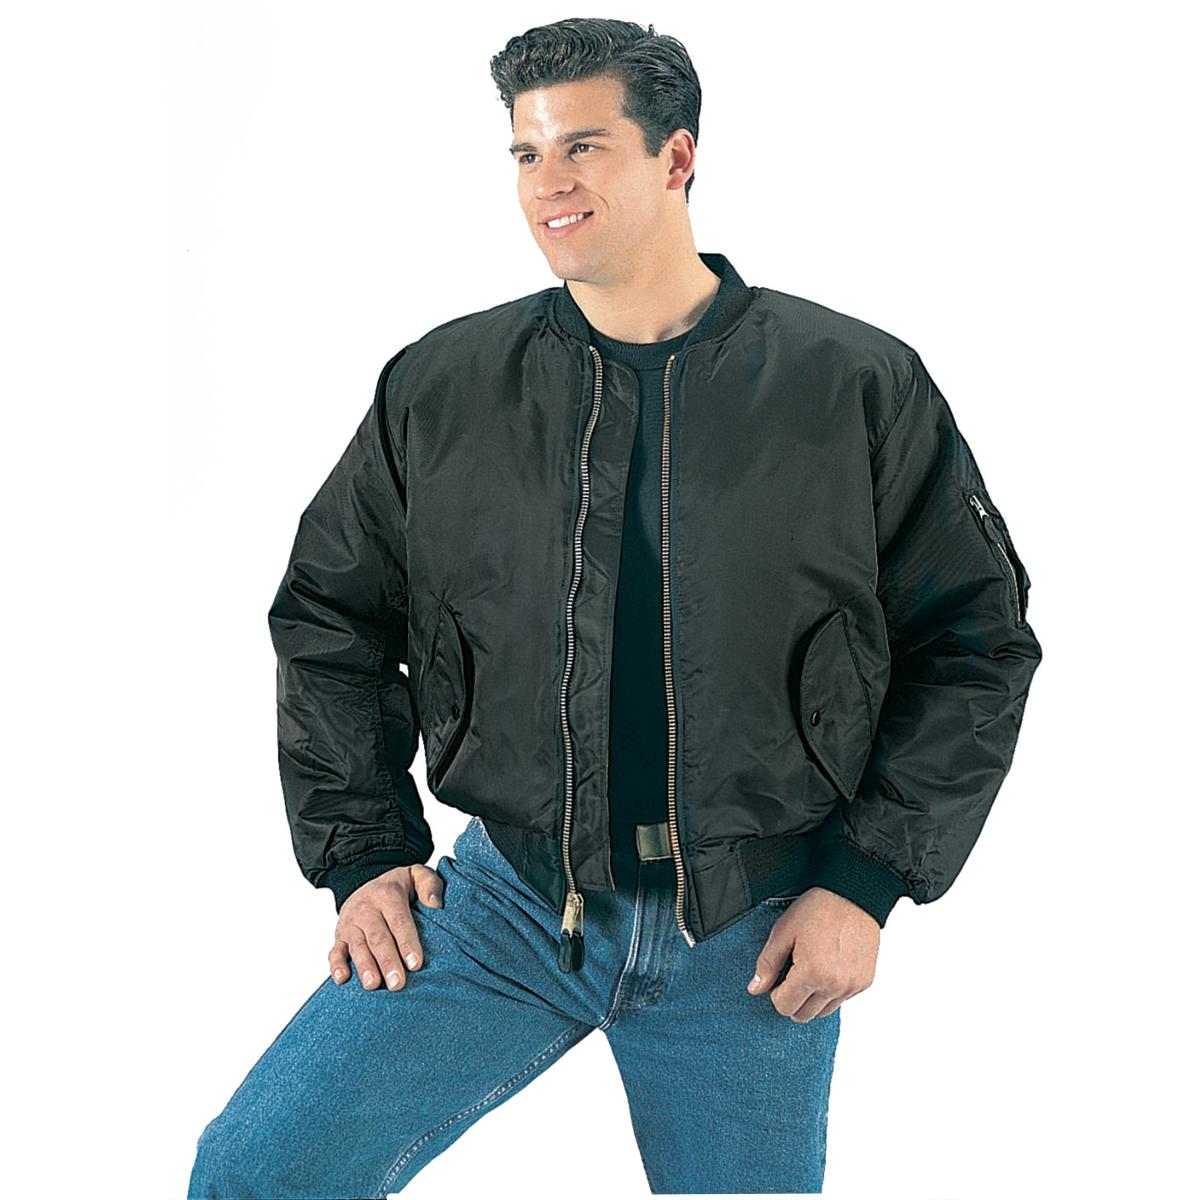 MA-1 Flight Jacket, Black, Pilot Jacket - Walmart.com